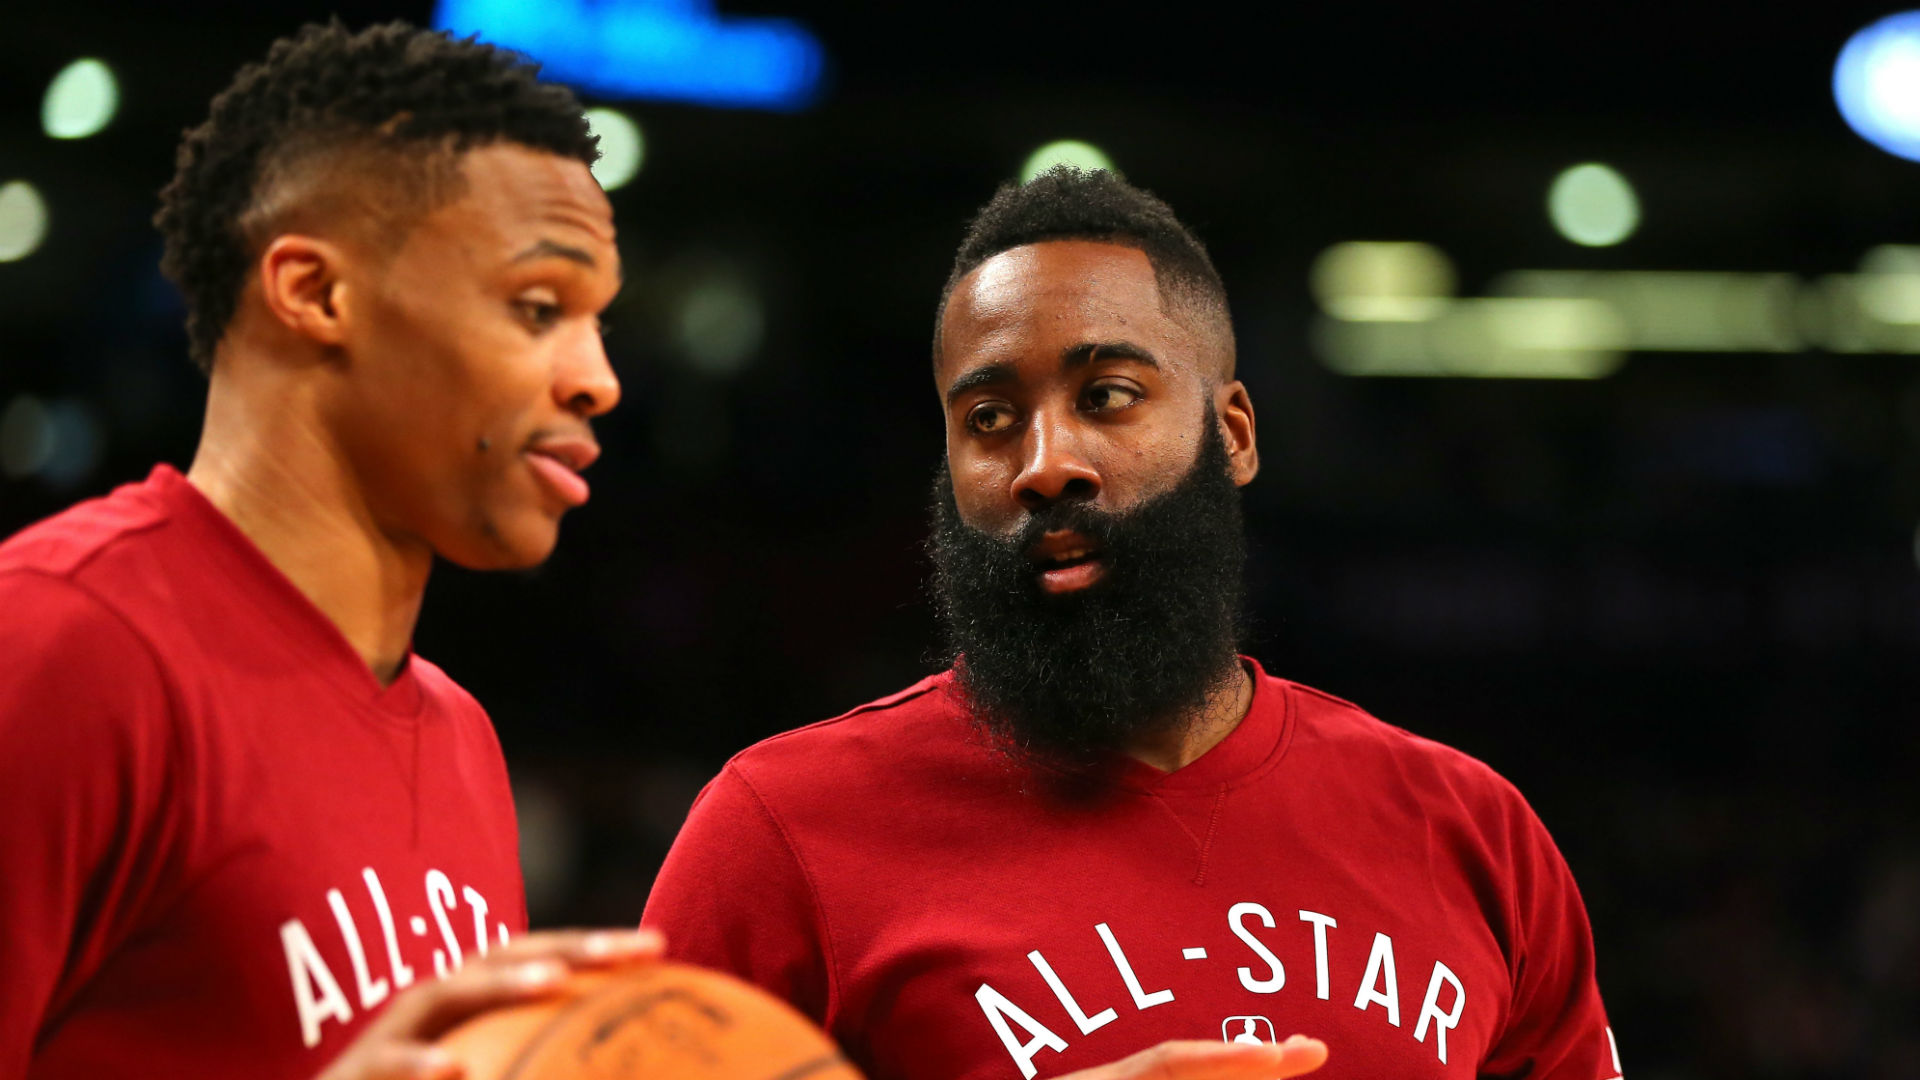 James Harden is pleased to be having the chance to play with Russell Westbrook again.